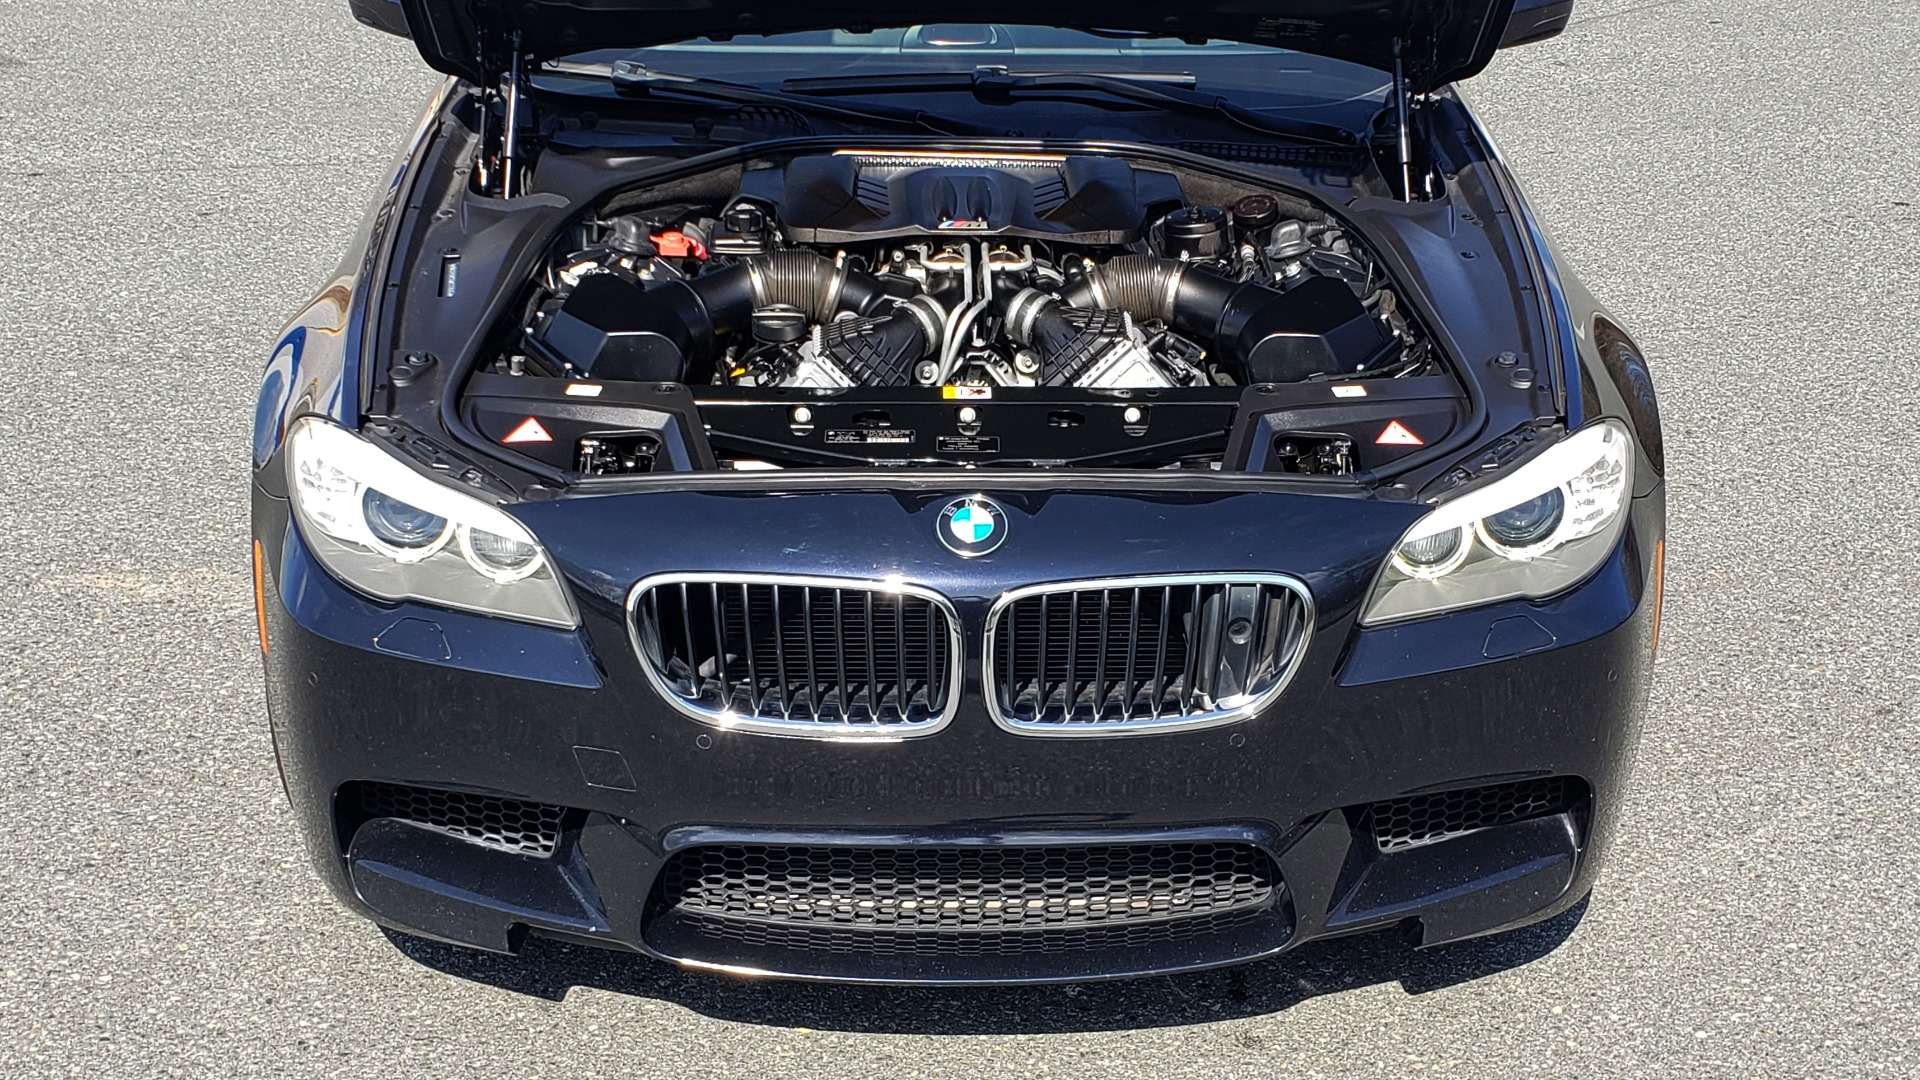 Used 2013 BMW M5 EXECUTIVE PKG / DRVR ASST / NAV / SUNROOF / REARVIEW for sale Sold at Formula Imports in Charlotte NC 28227 11